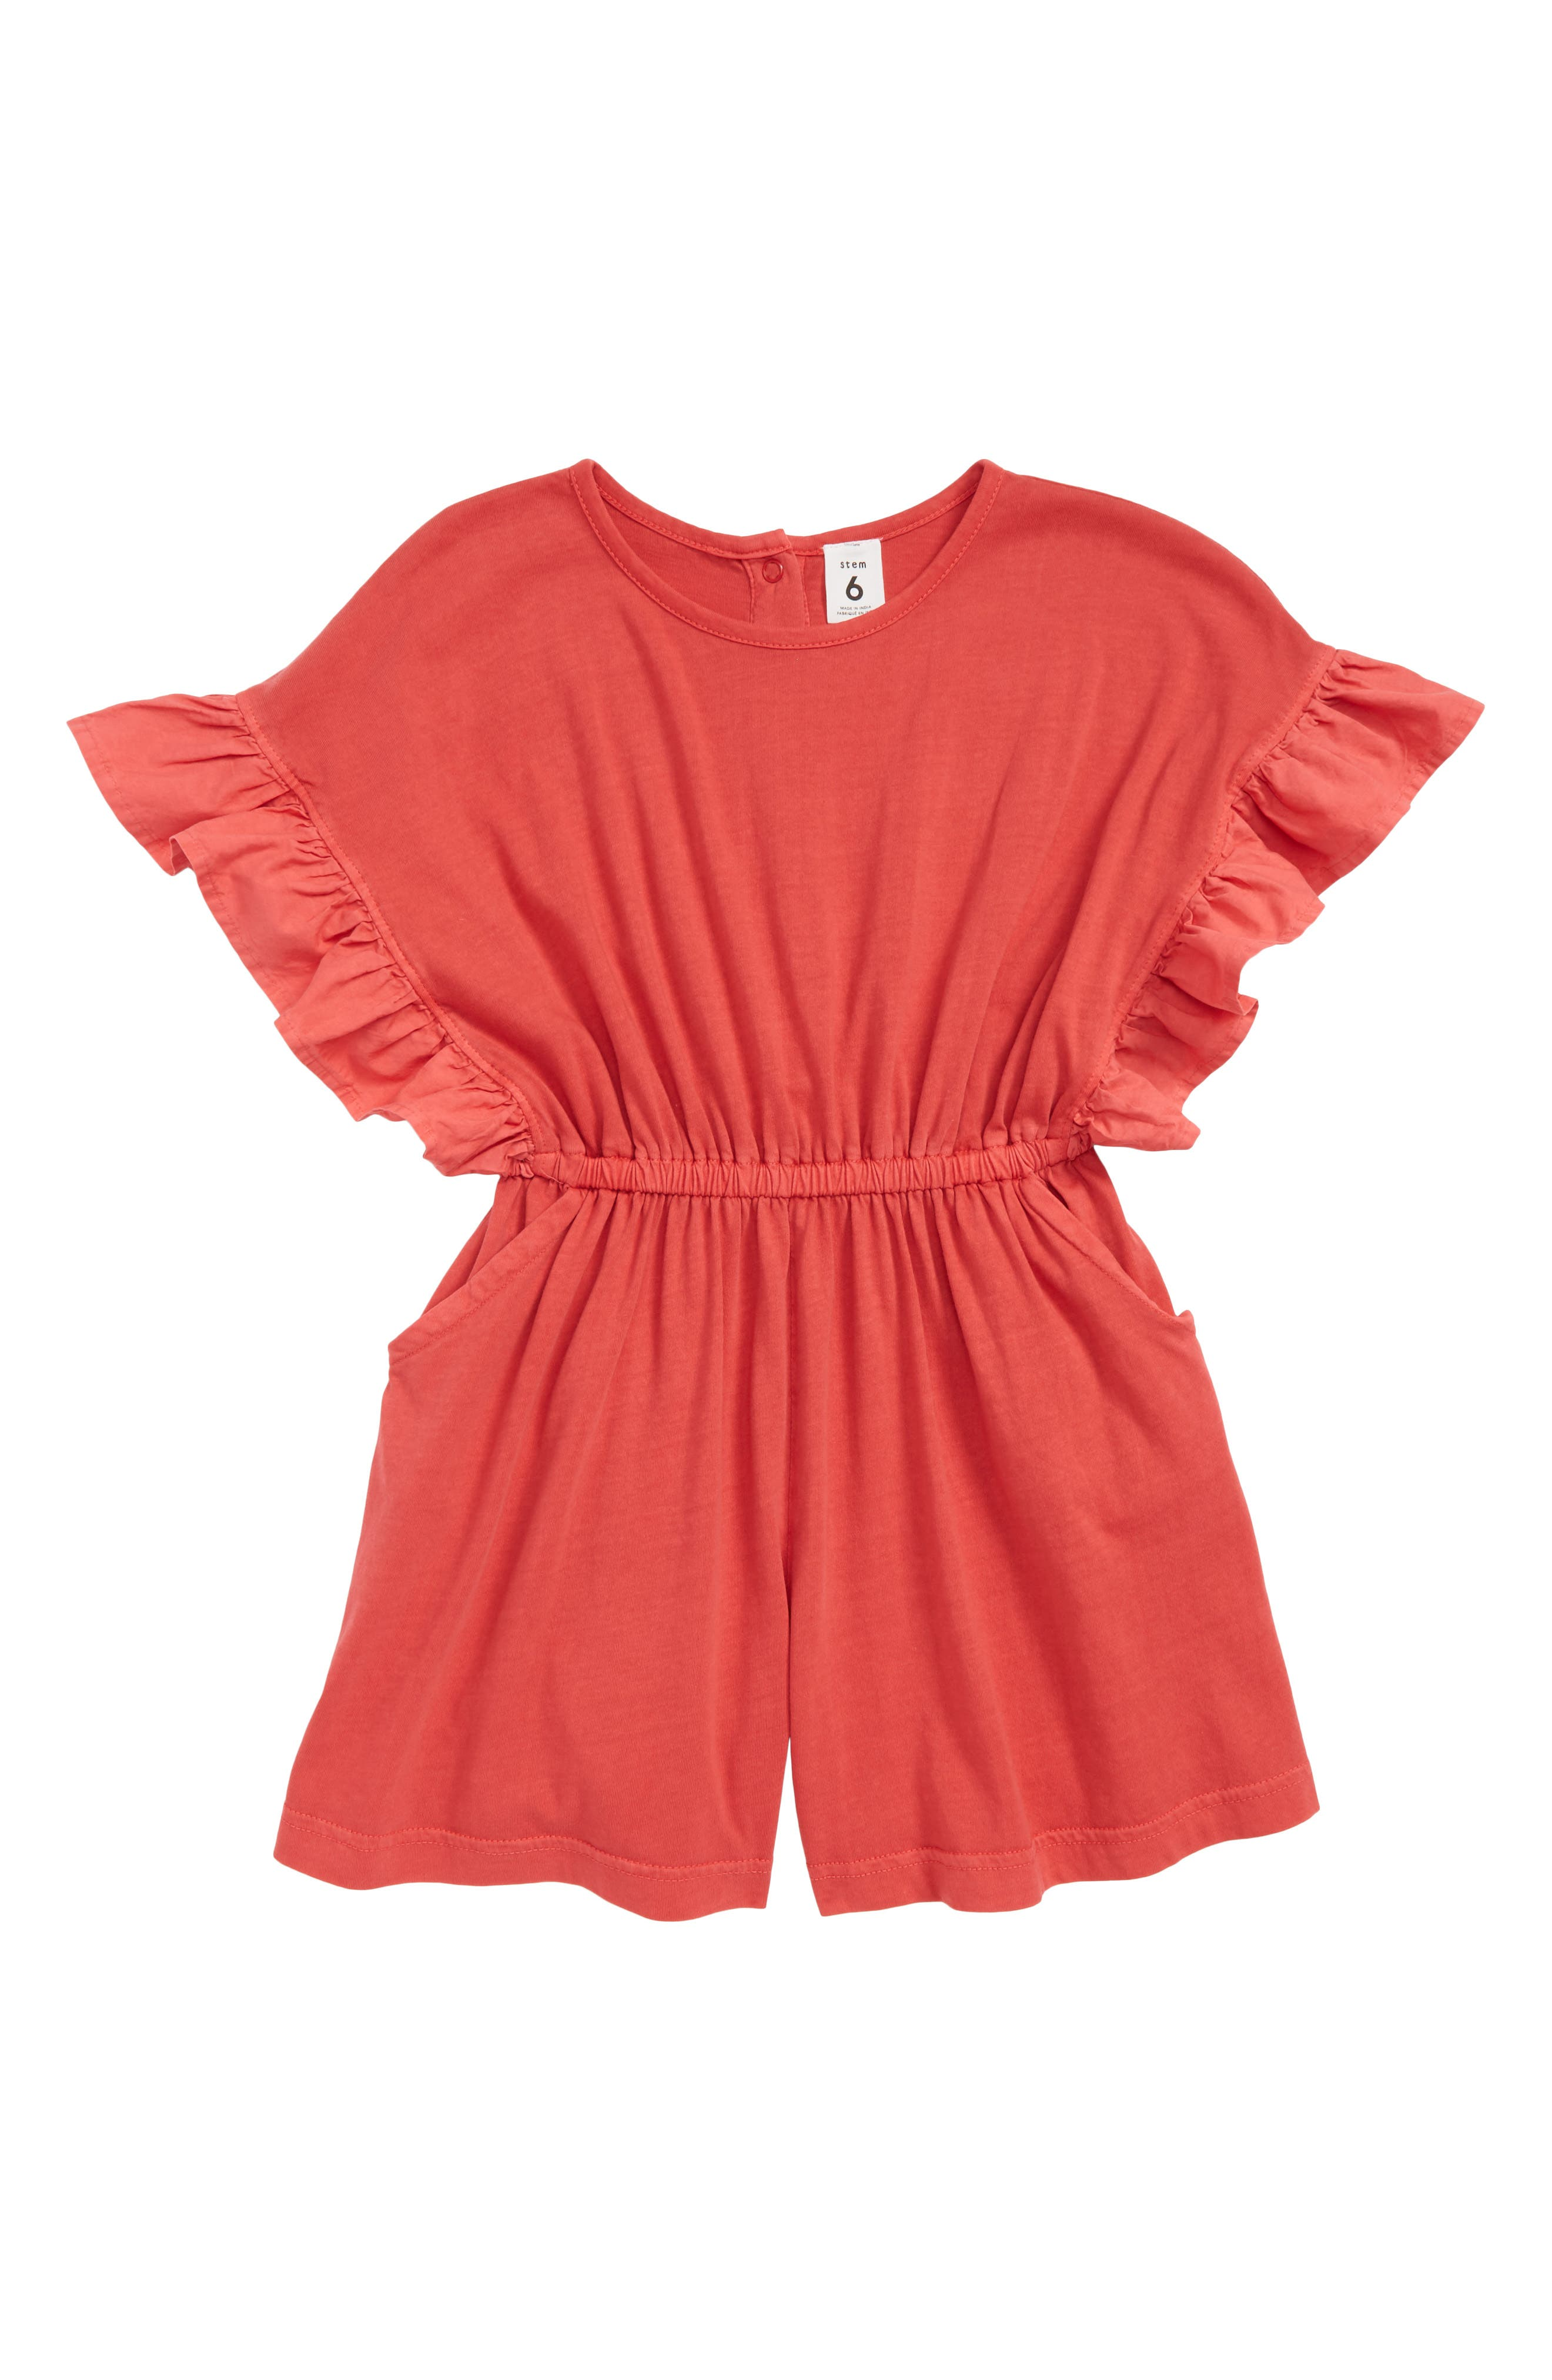 Ruffle Sleeve Romper,                             Main thumbnail 1, color,                             Red Hibiscus